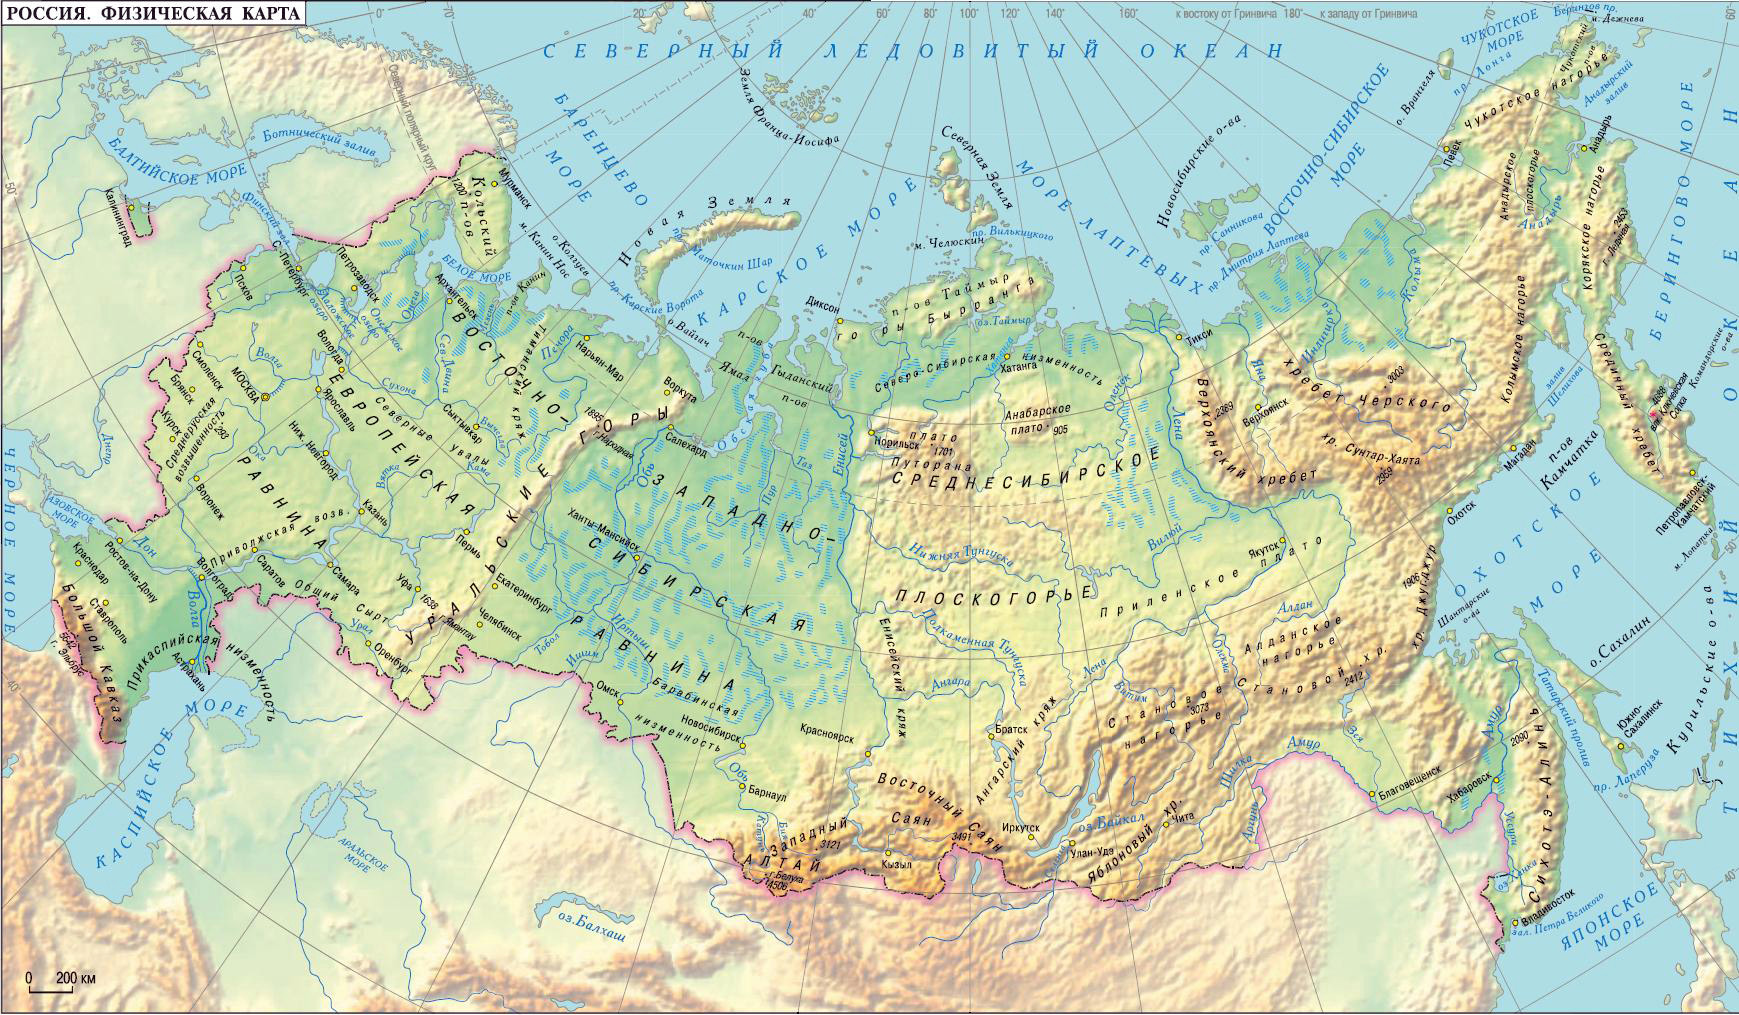 Pacific Ocean Map Printable moreover Color Political Map Of India additionally Russia Physical Map in addition Plate Tectonics Flip Book in addition Google Map World Countries. on blank world map related keywords amp suggestions